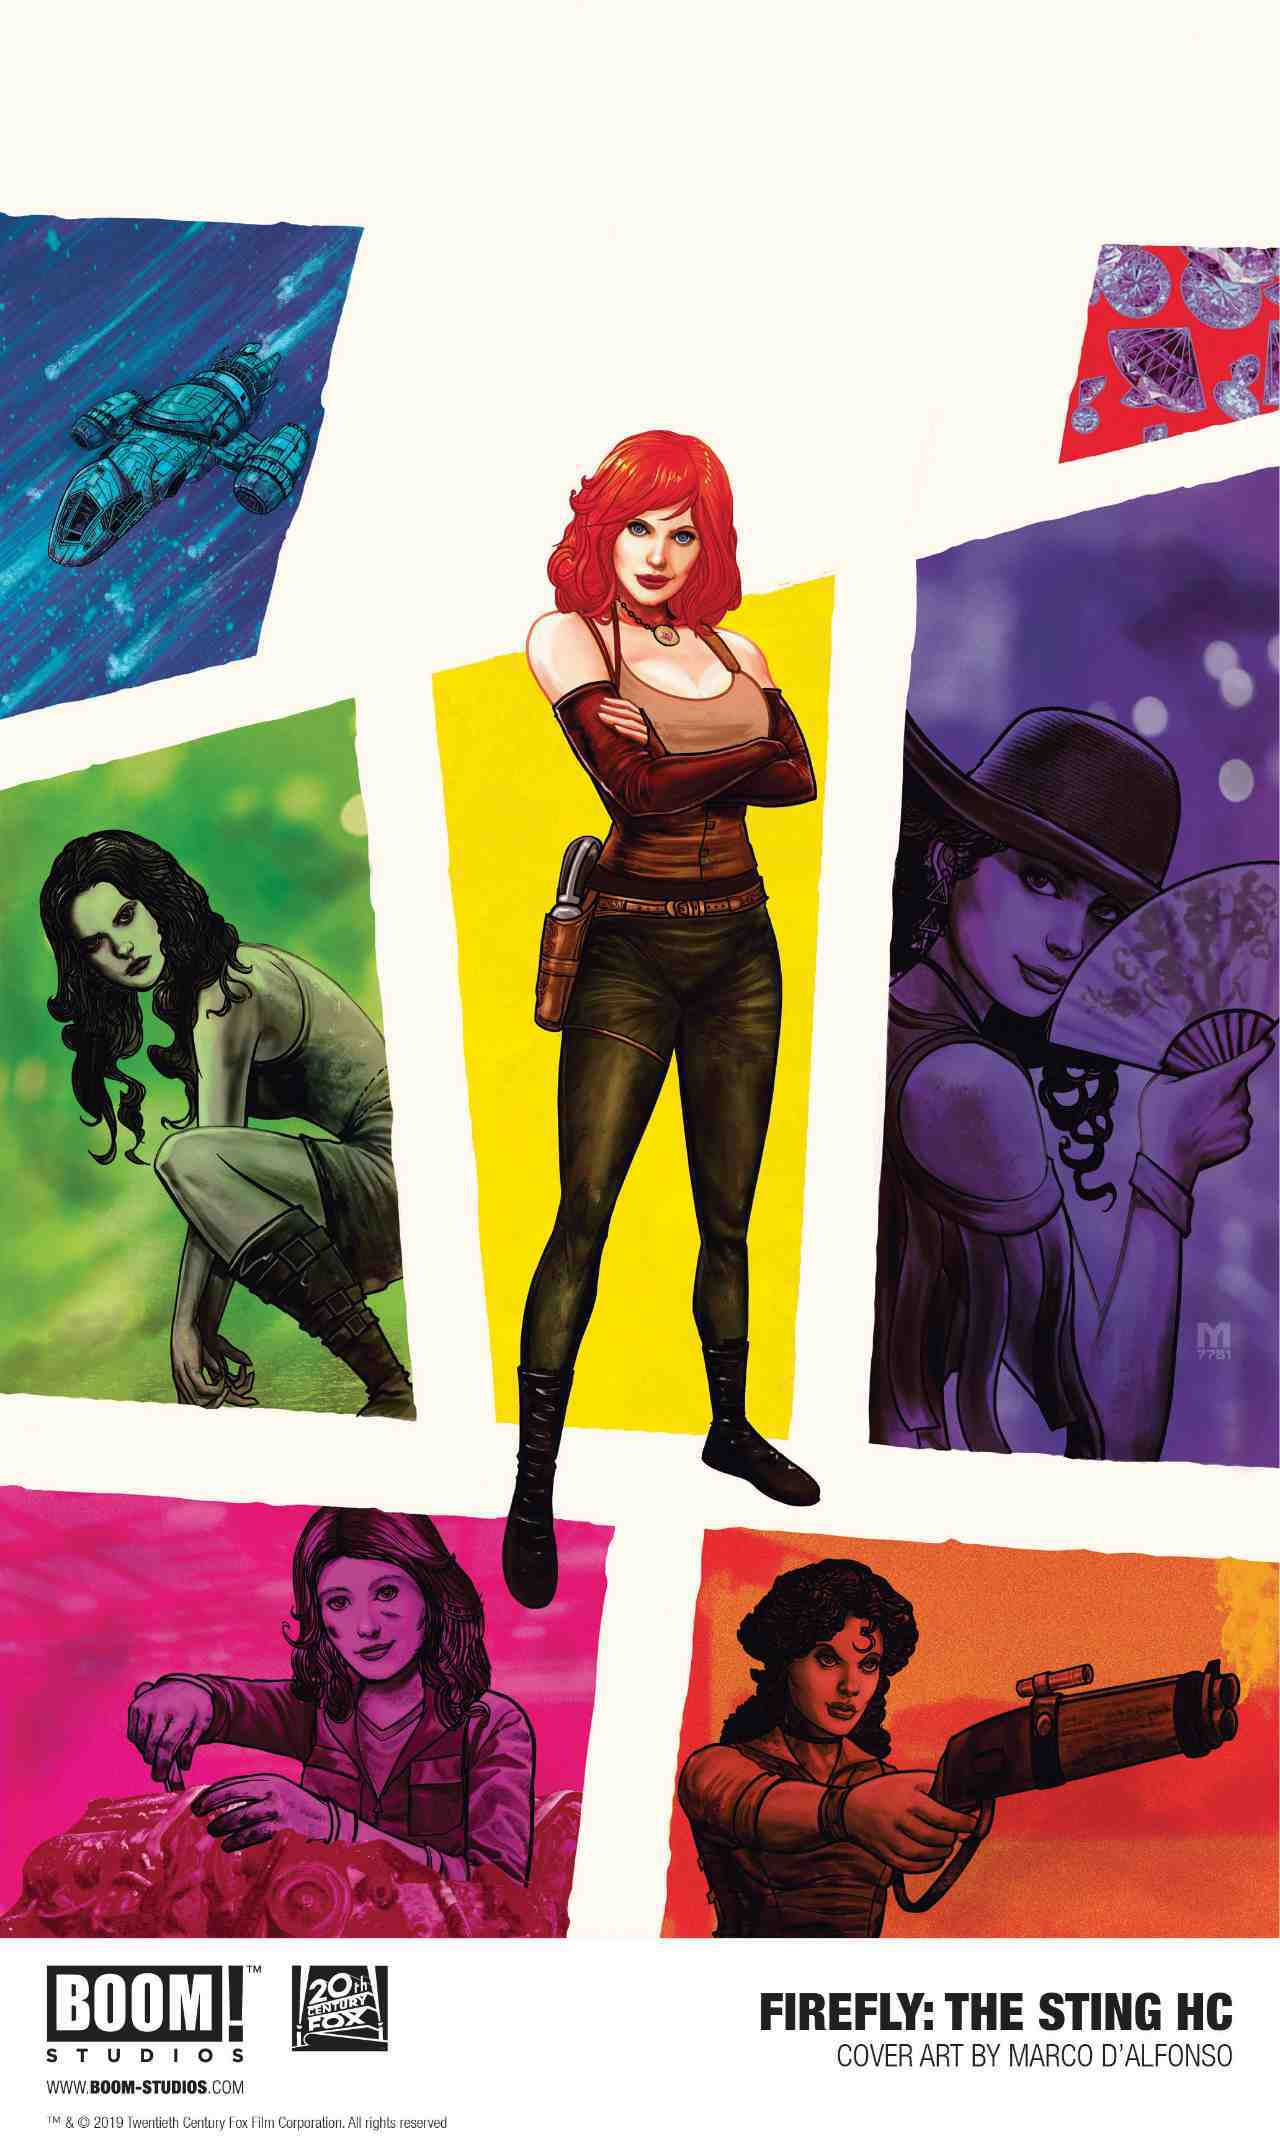 BOOM! Studios Announce Firefly: The Sting Graphic Novel